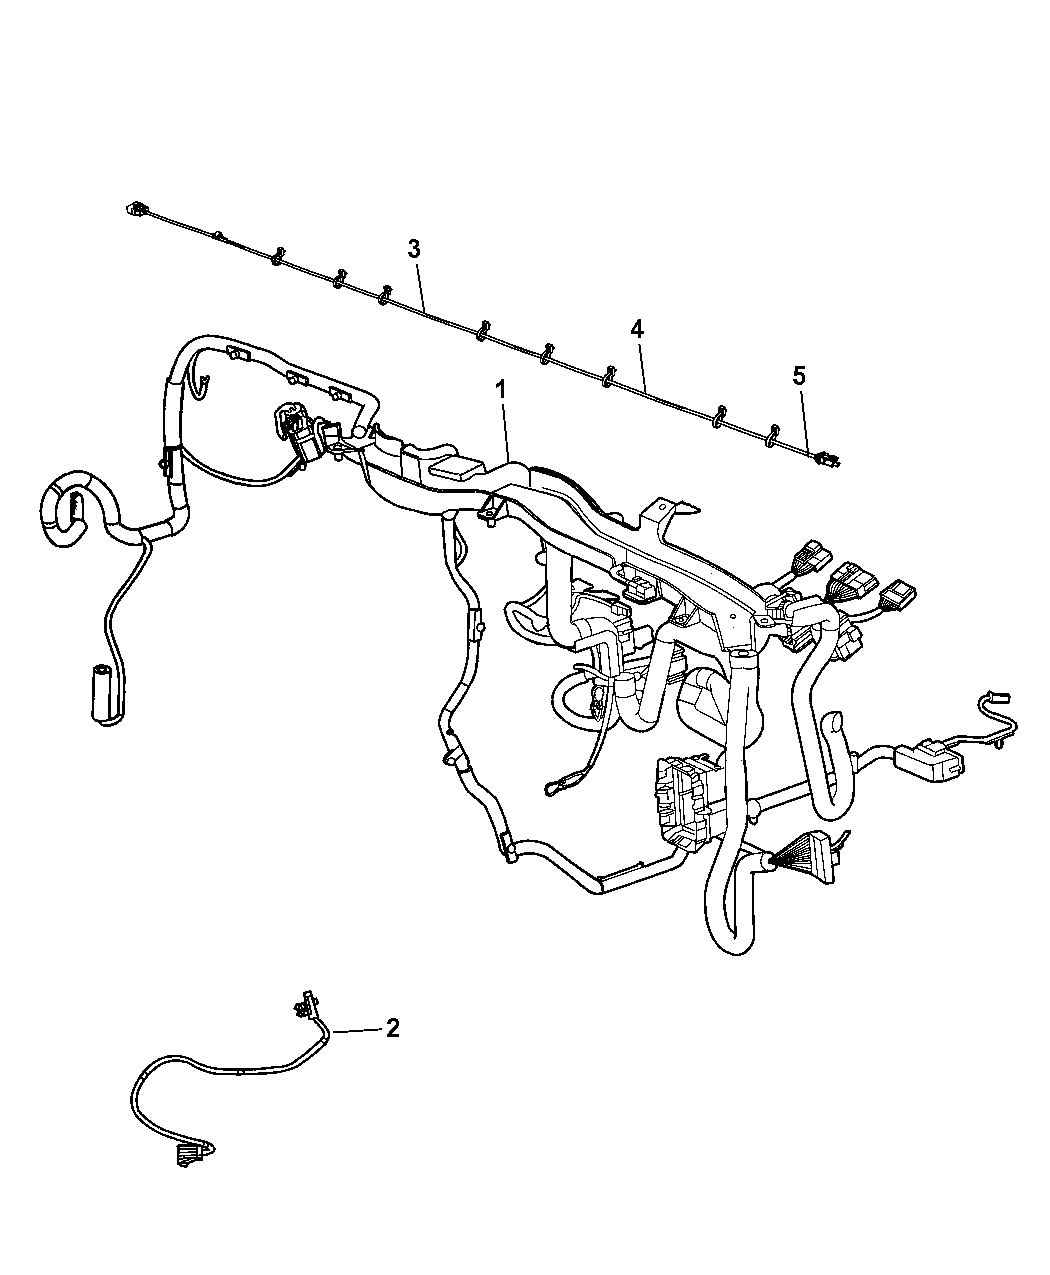 wiring diagram for jeep grand cherokee 68283498ad - genuine jeep wiring-instrument panel wiring diagram for jeep compass 2013